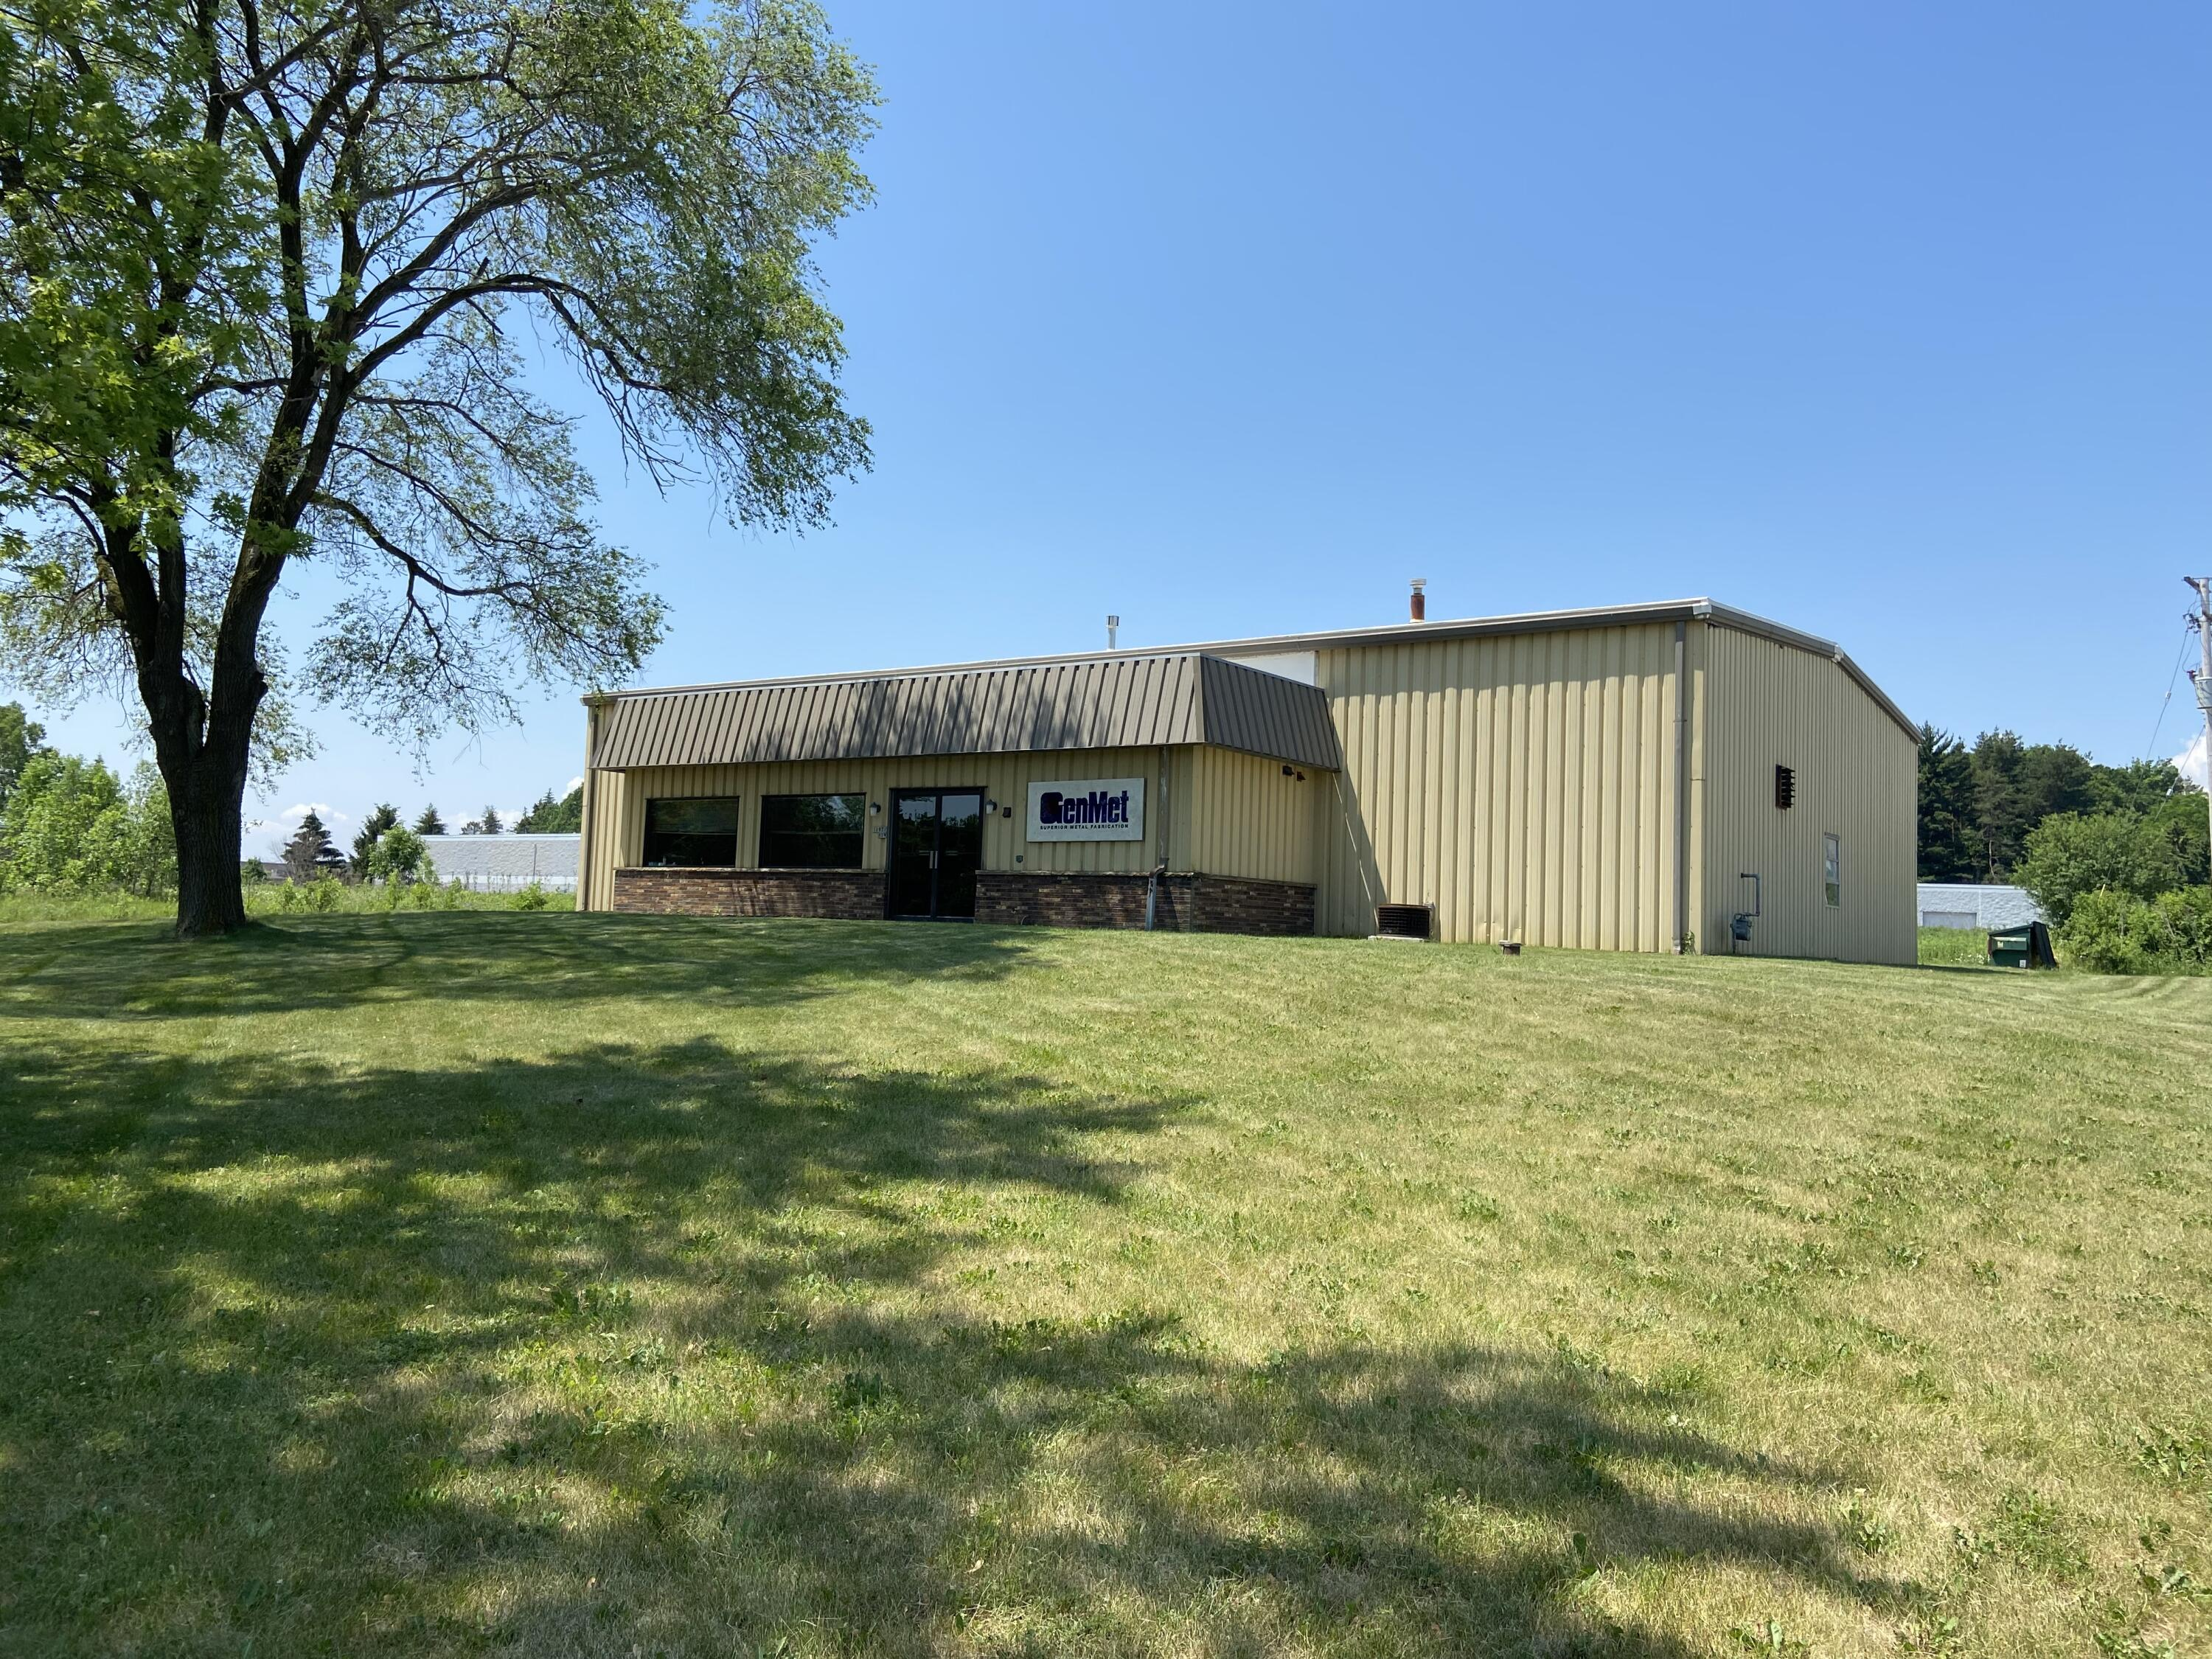 Photo of 10827 N Industrial Dr, Mequon, WI 53092